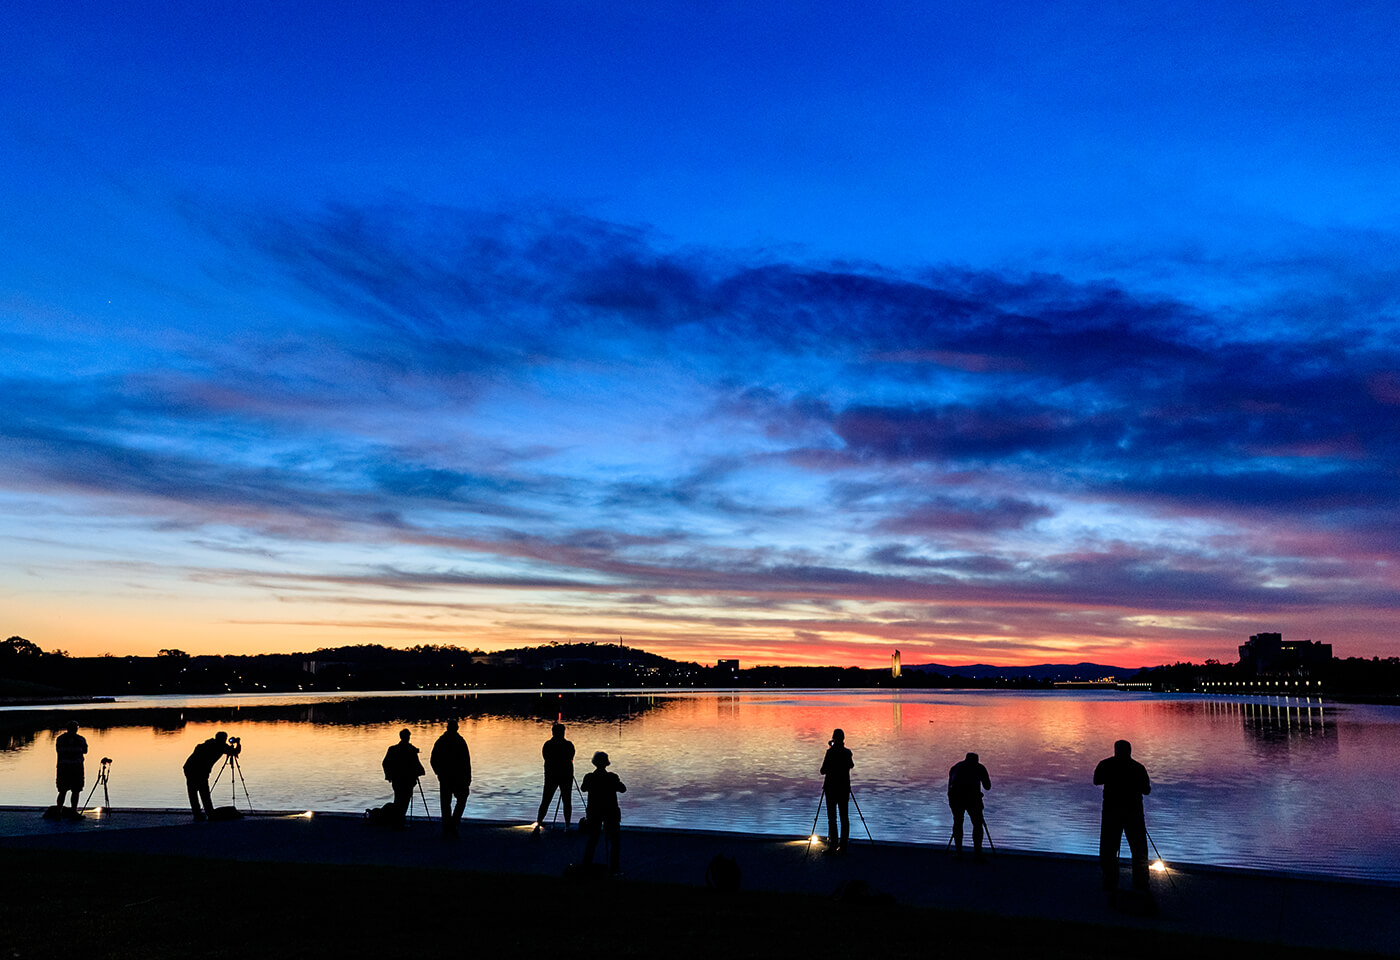 Photographers shooting sunset at Windamere Dam